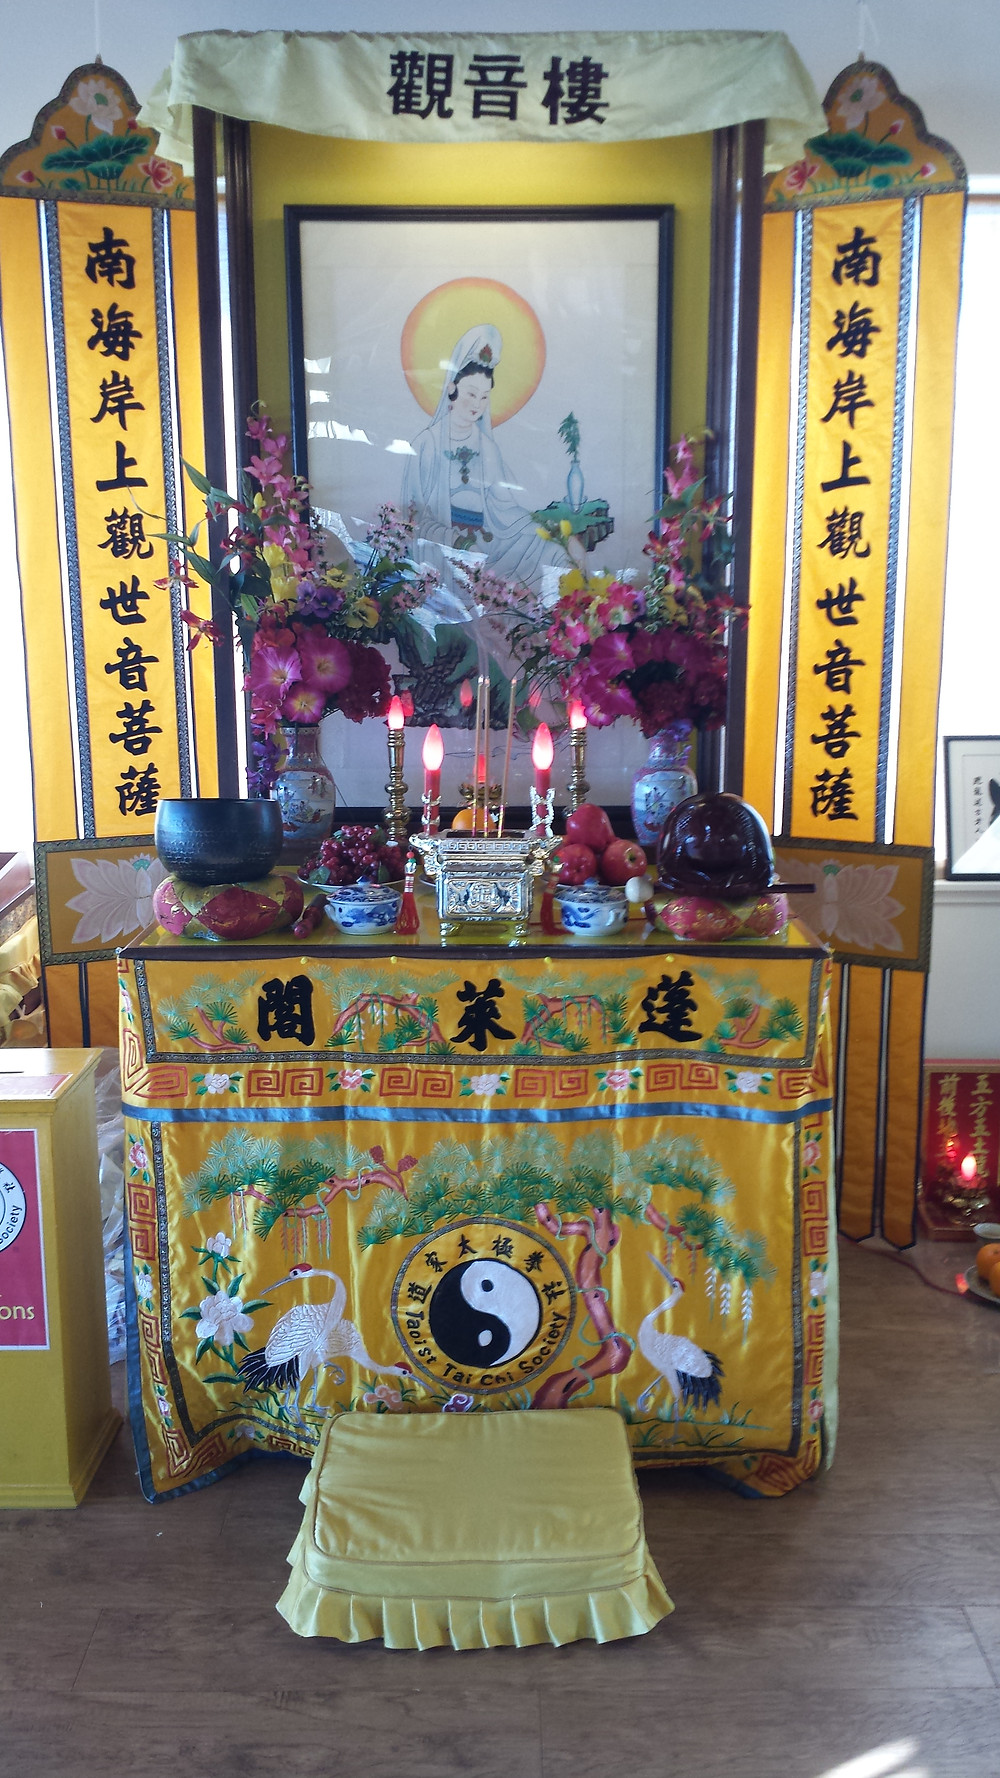 Daoist temple - figure is Quan Yin from Buddhism. China mingles its three religious traditions.